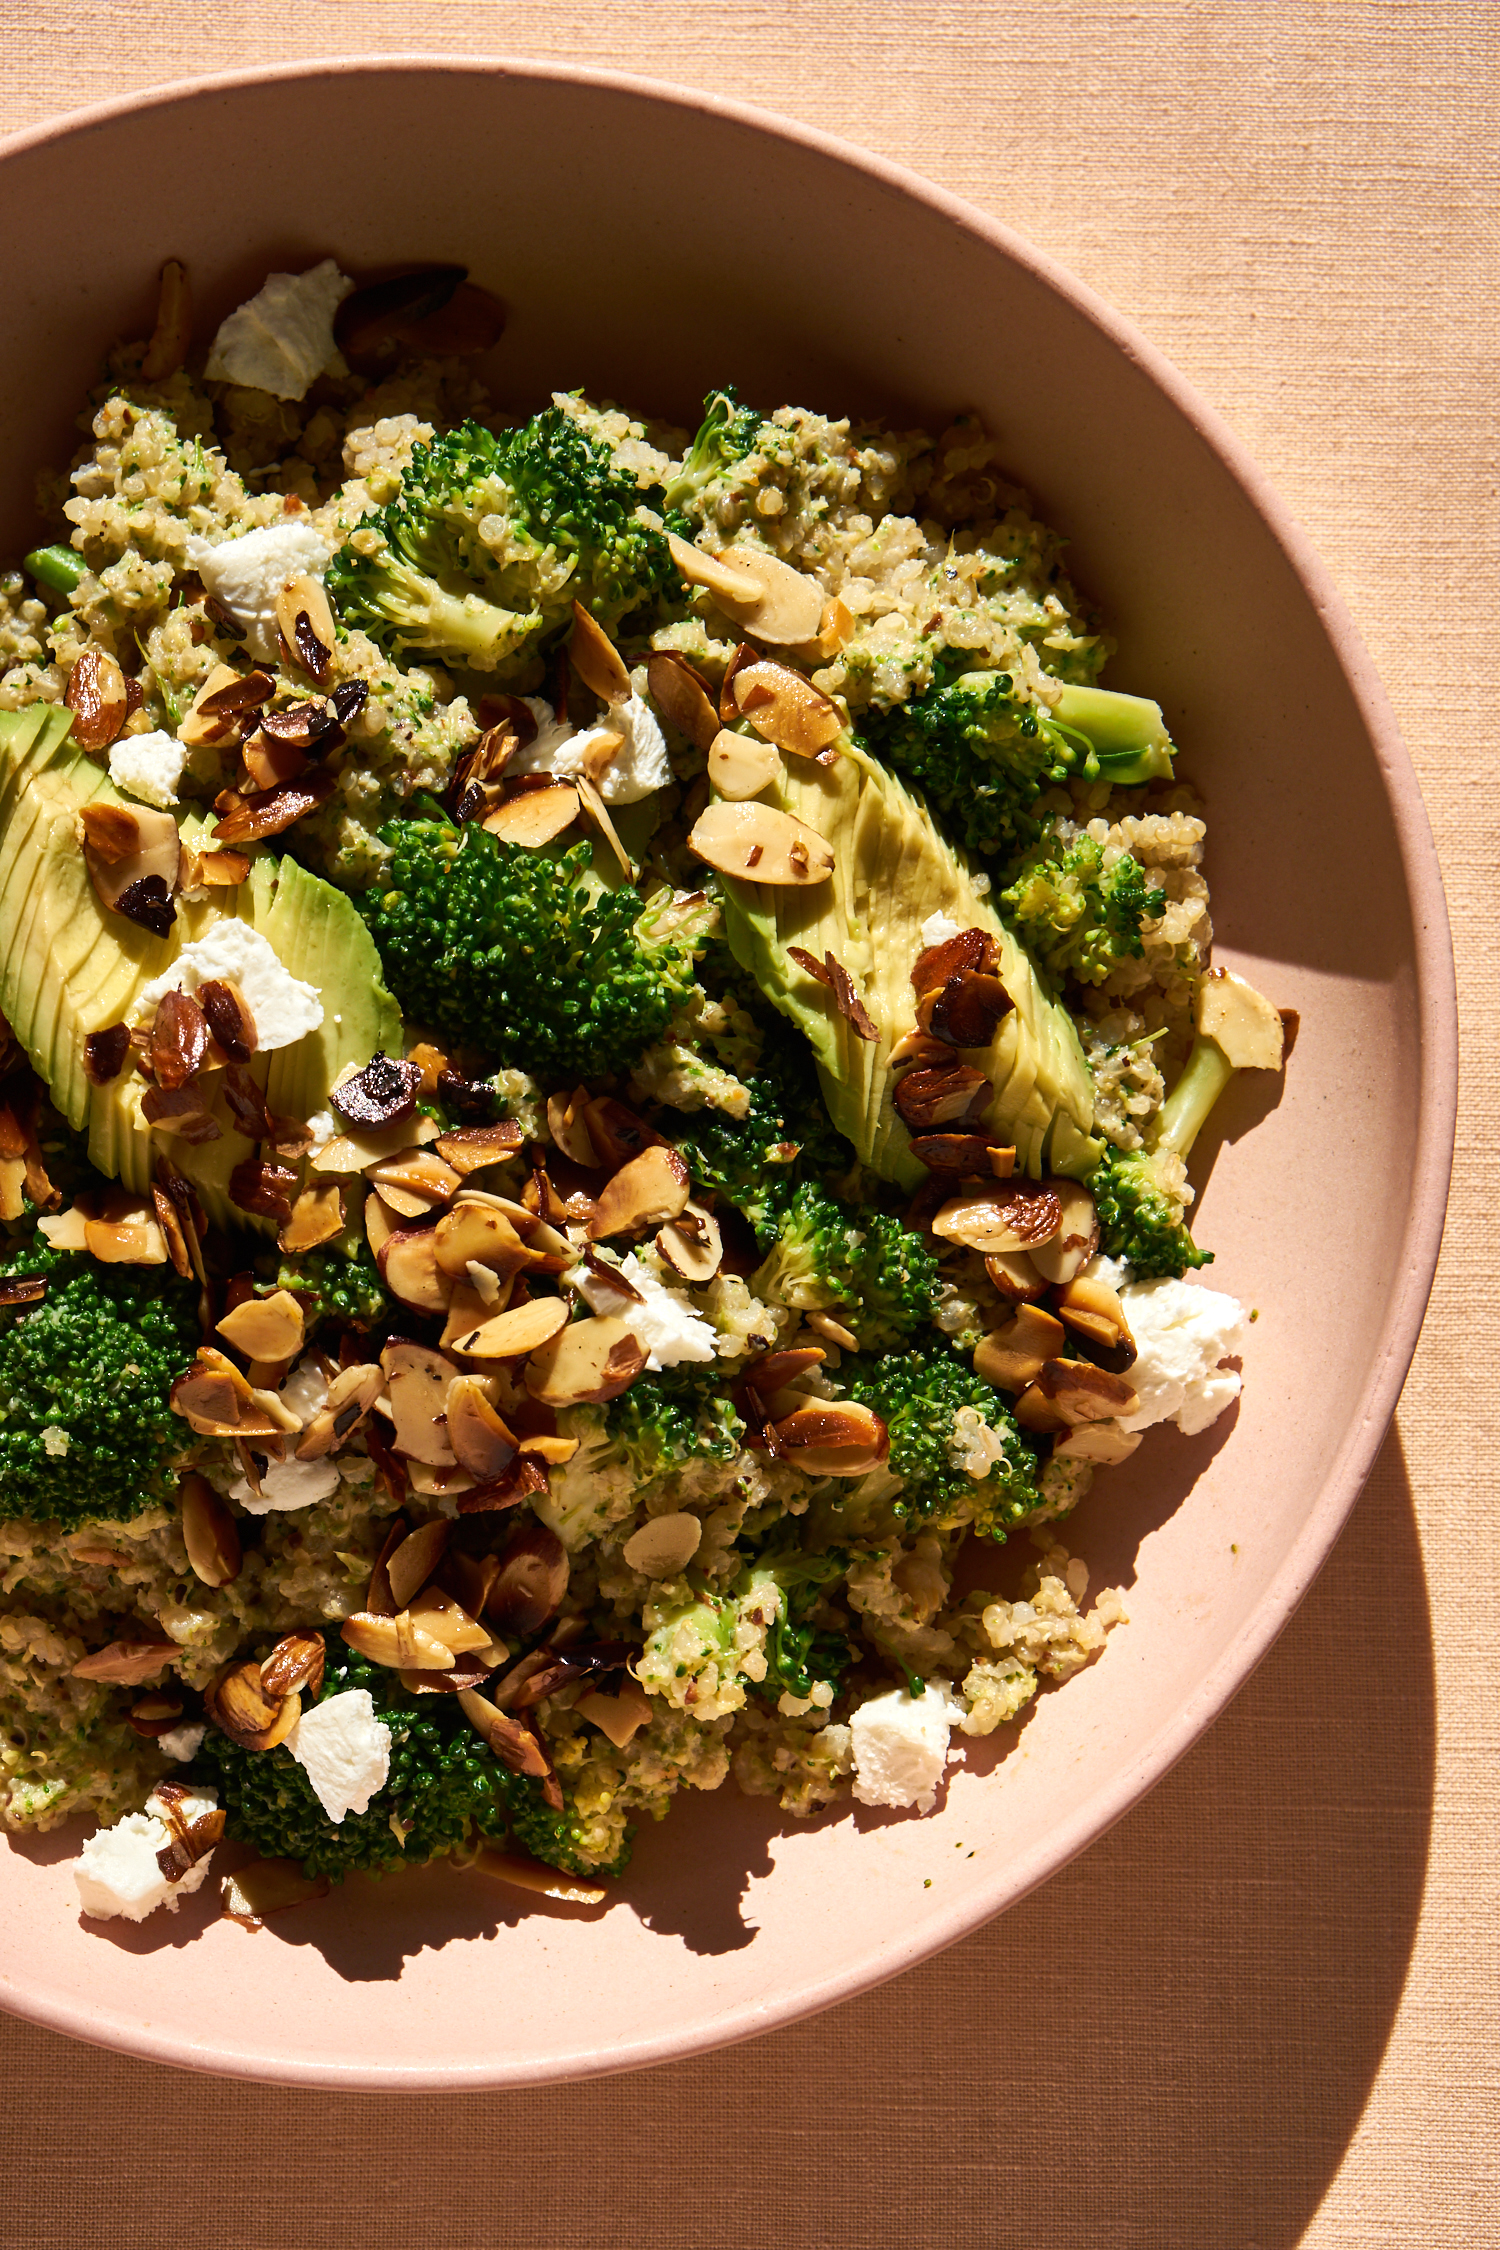 Quinoa Dual Recipe for Broccoli